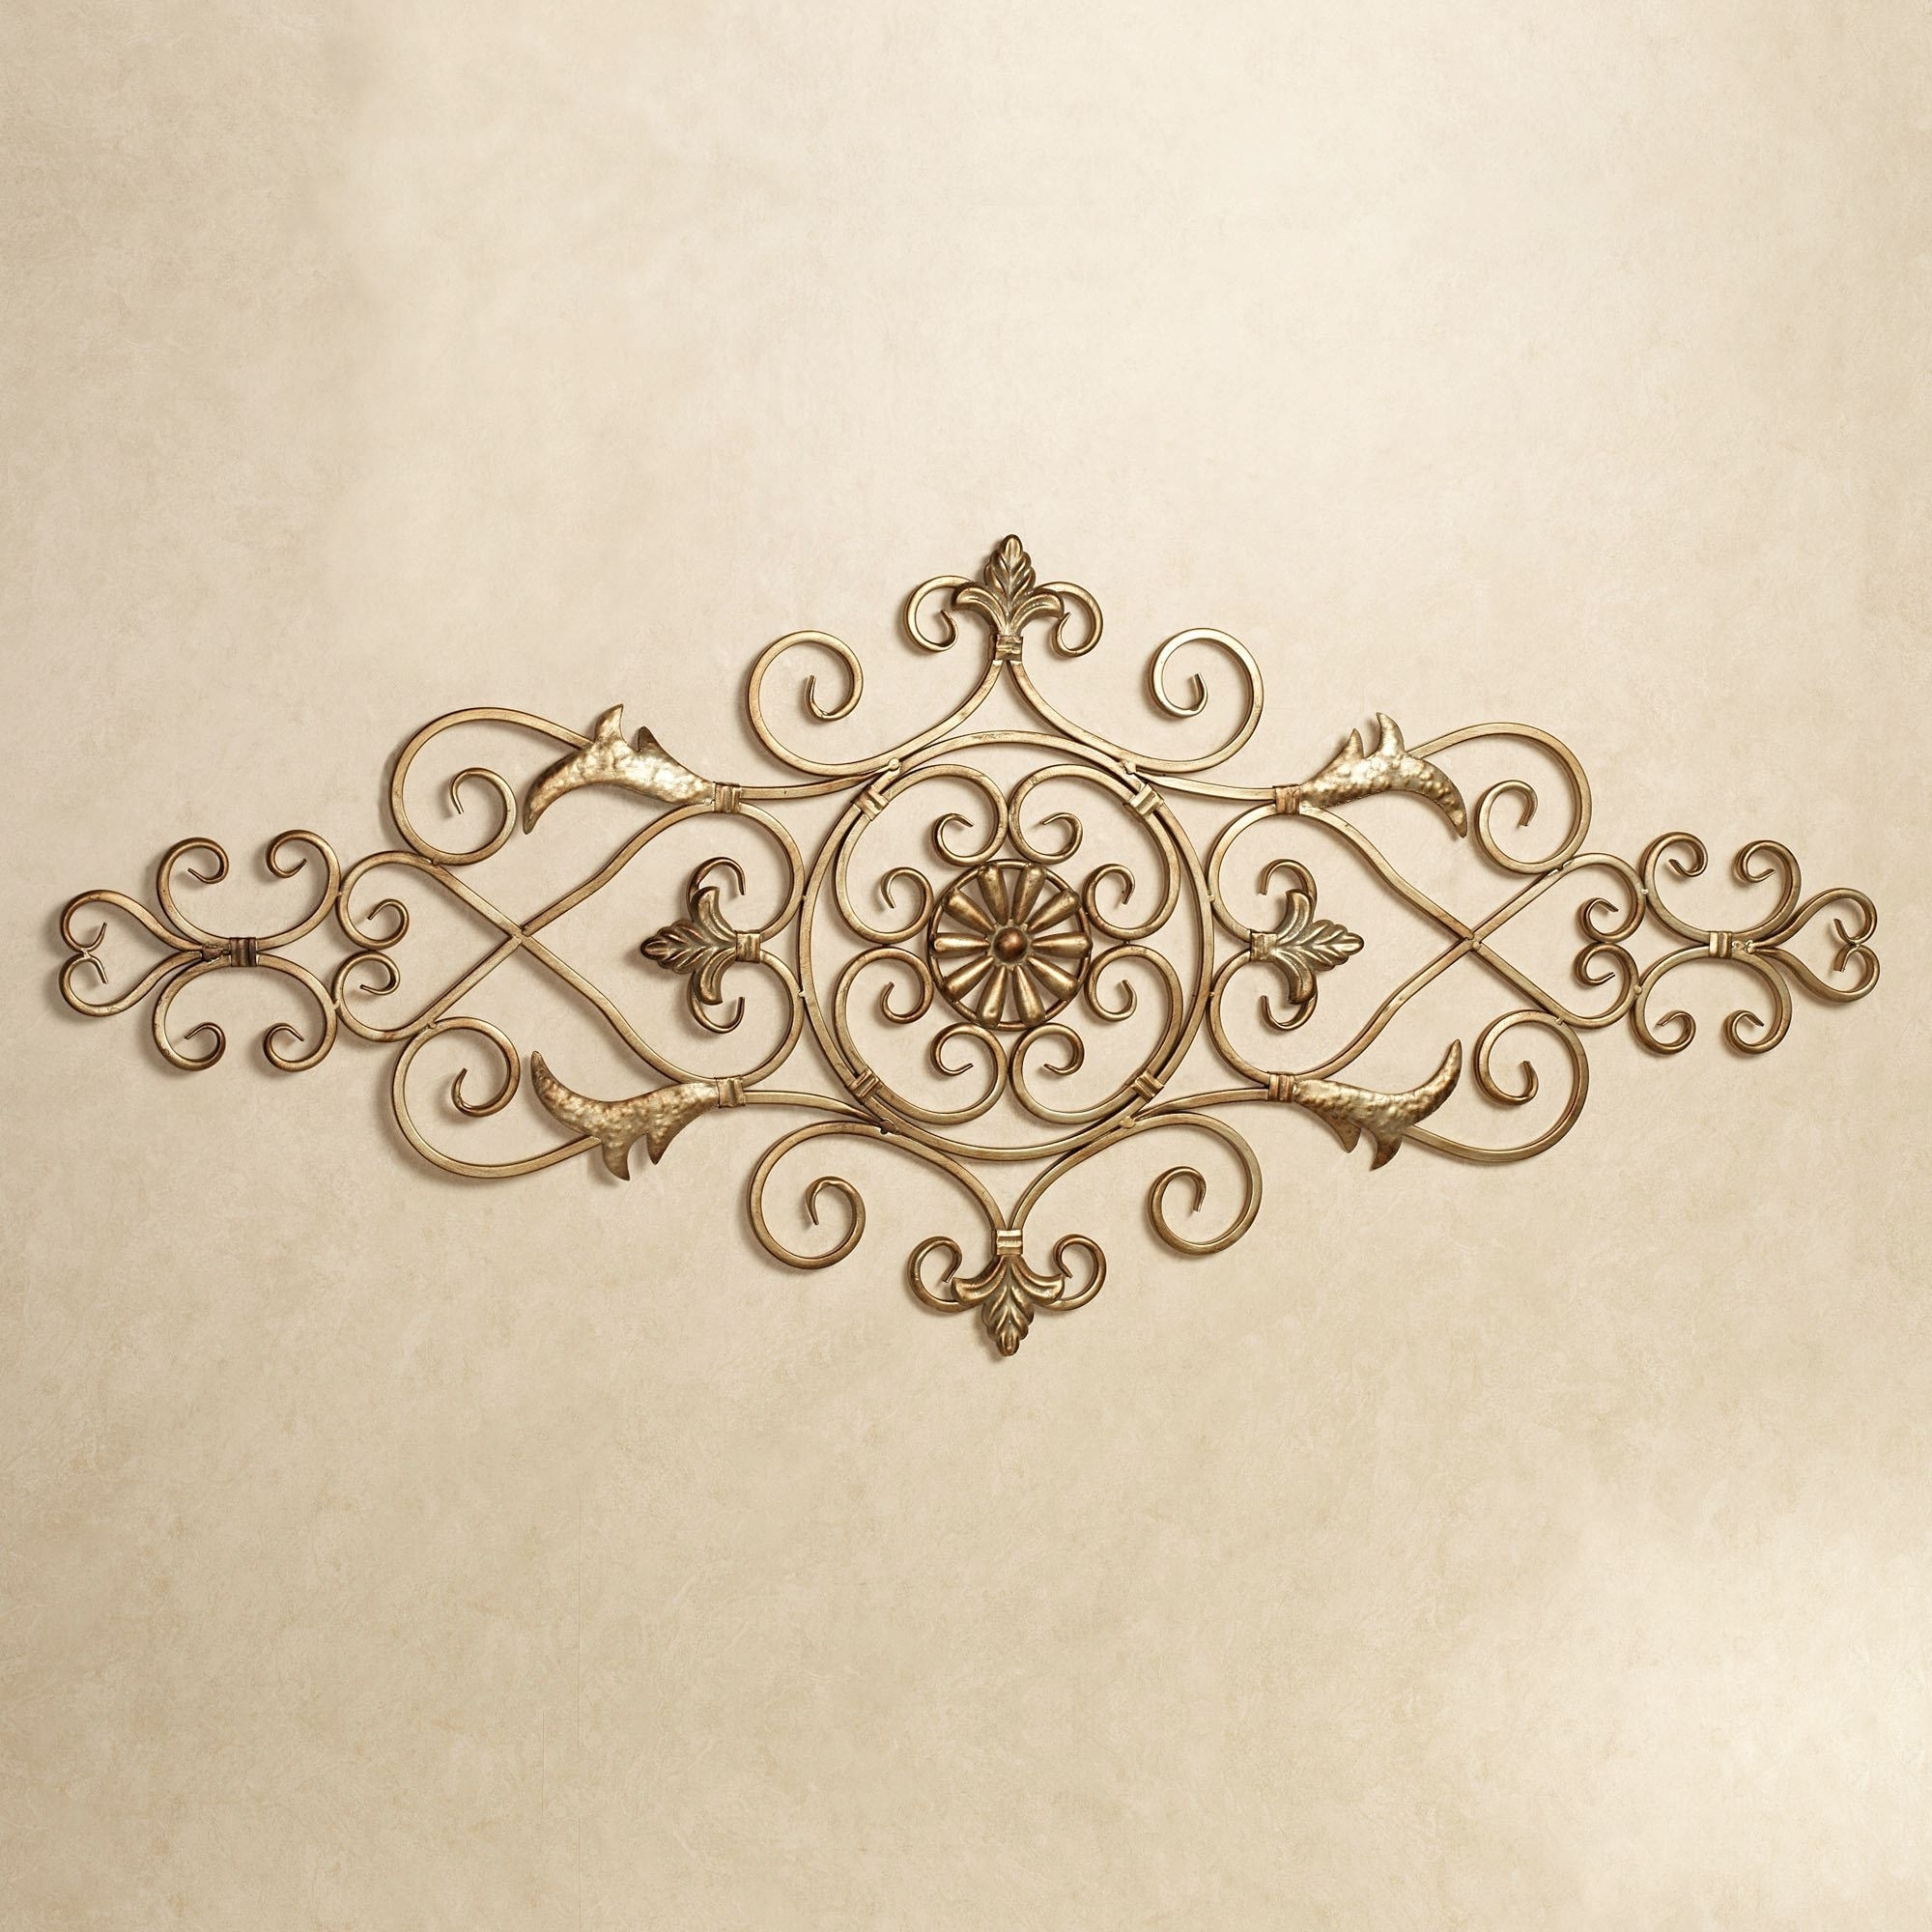 Merano Scrolling Metal Wall Grille intended for Metal Scroll Wall Art (Image 9 of 20)